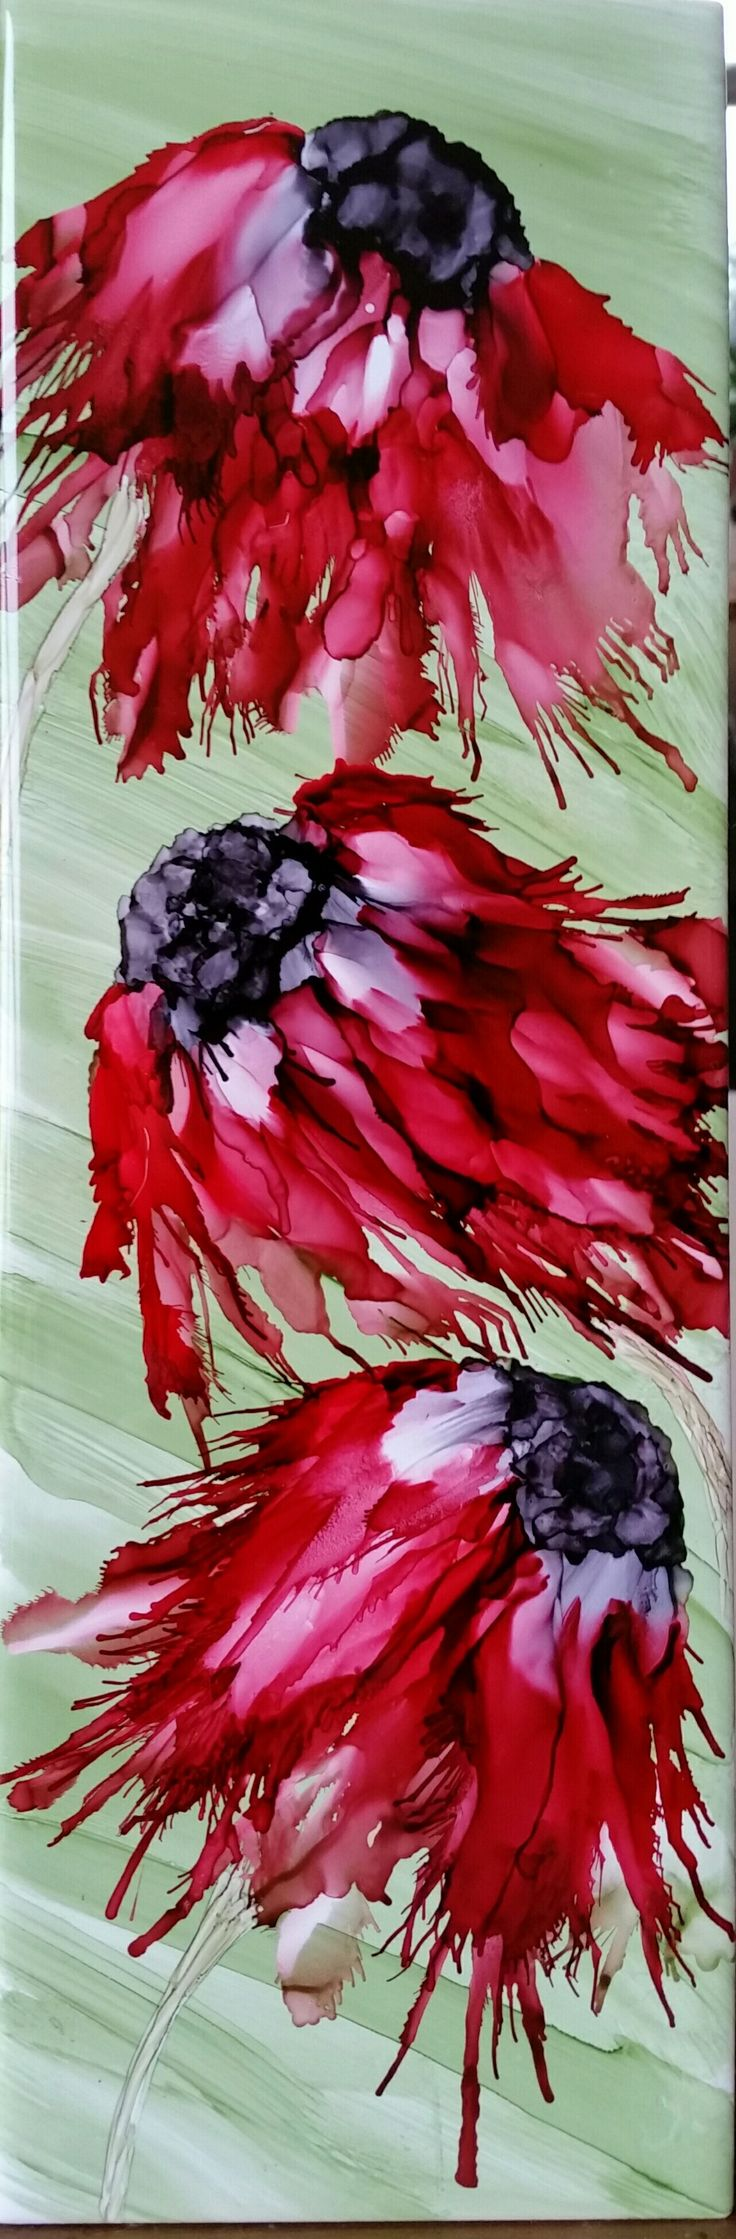 Flowers in alcohol ink on 12x4 tile by Tina.